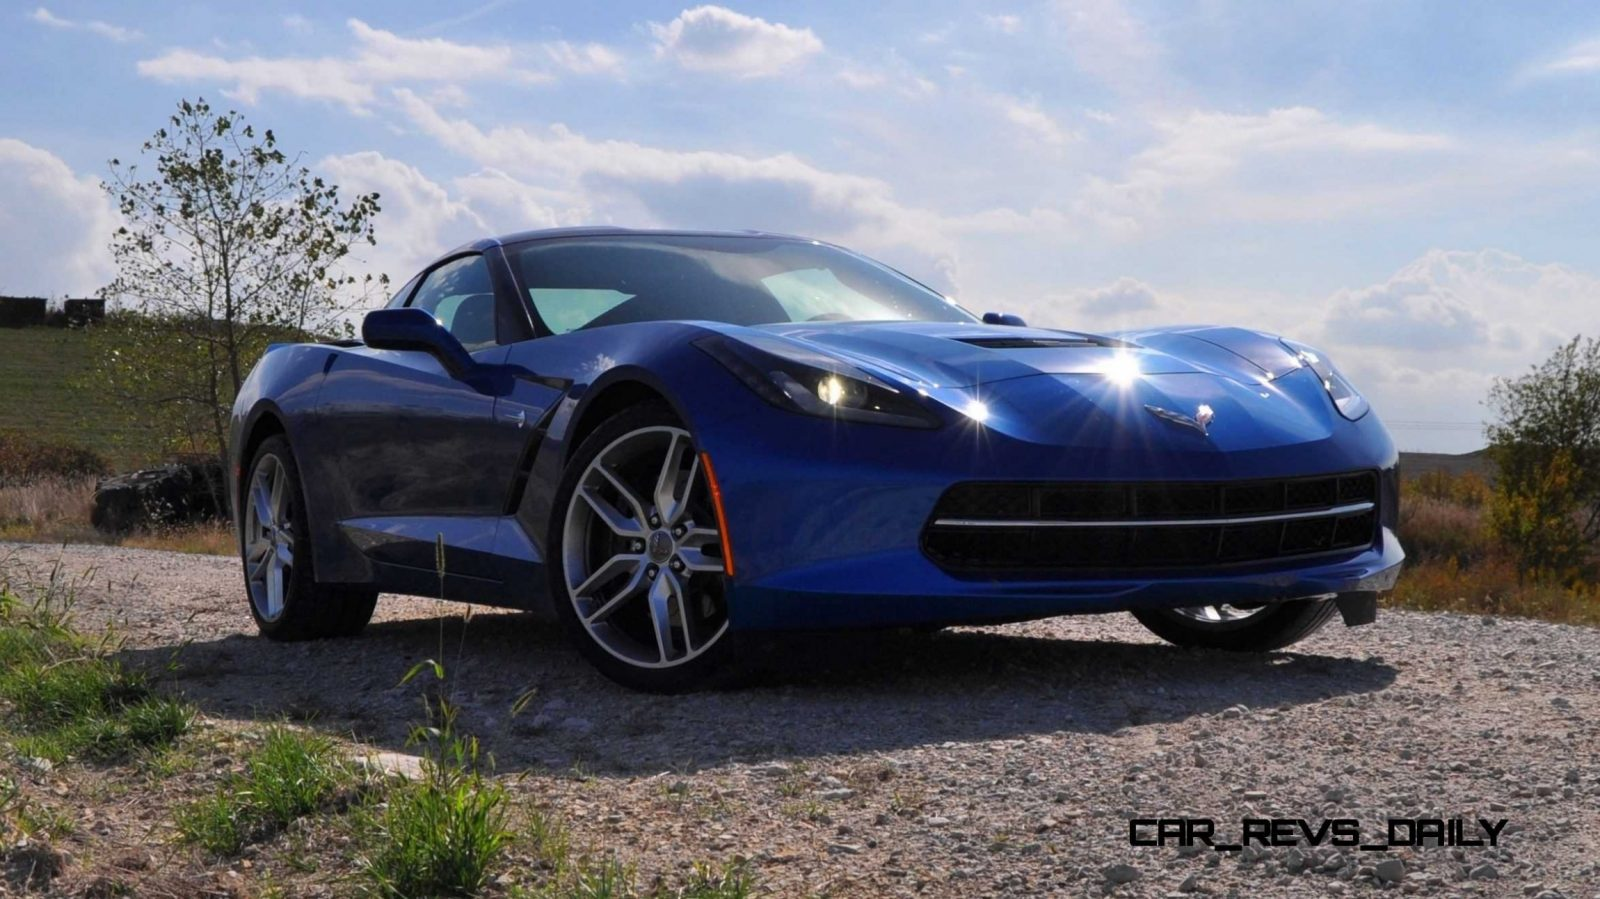 2014 Chevrolet Corvette Stingray Z51 in 102 Photos97